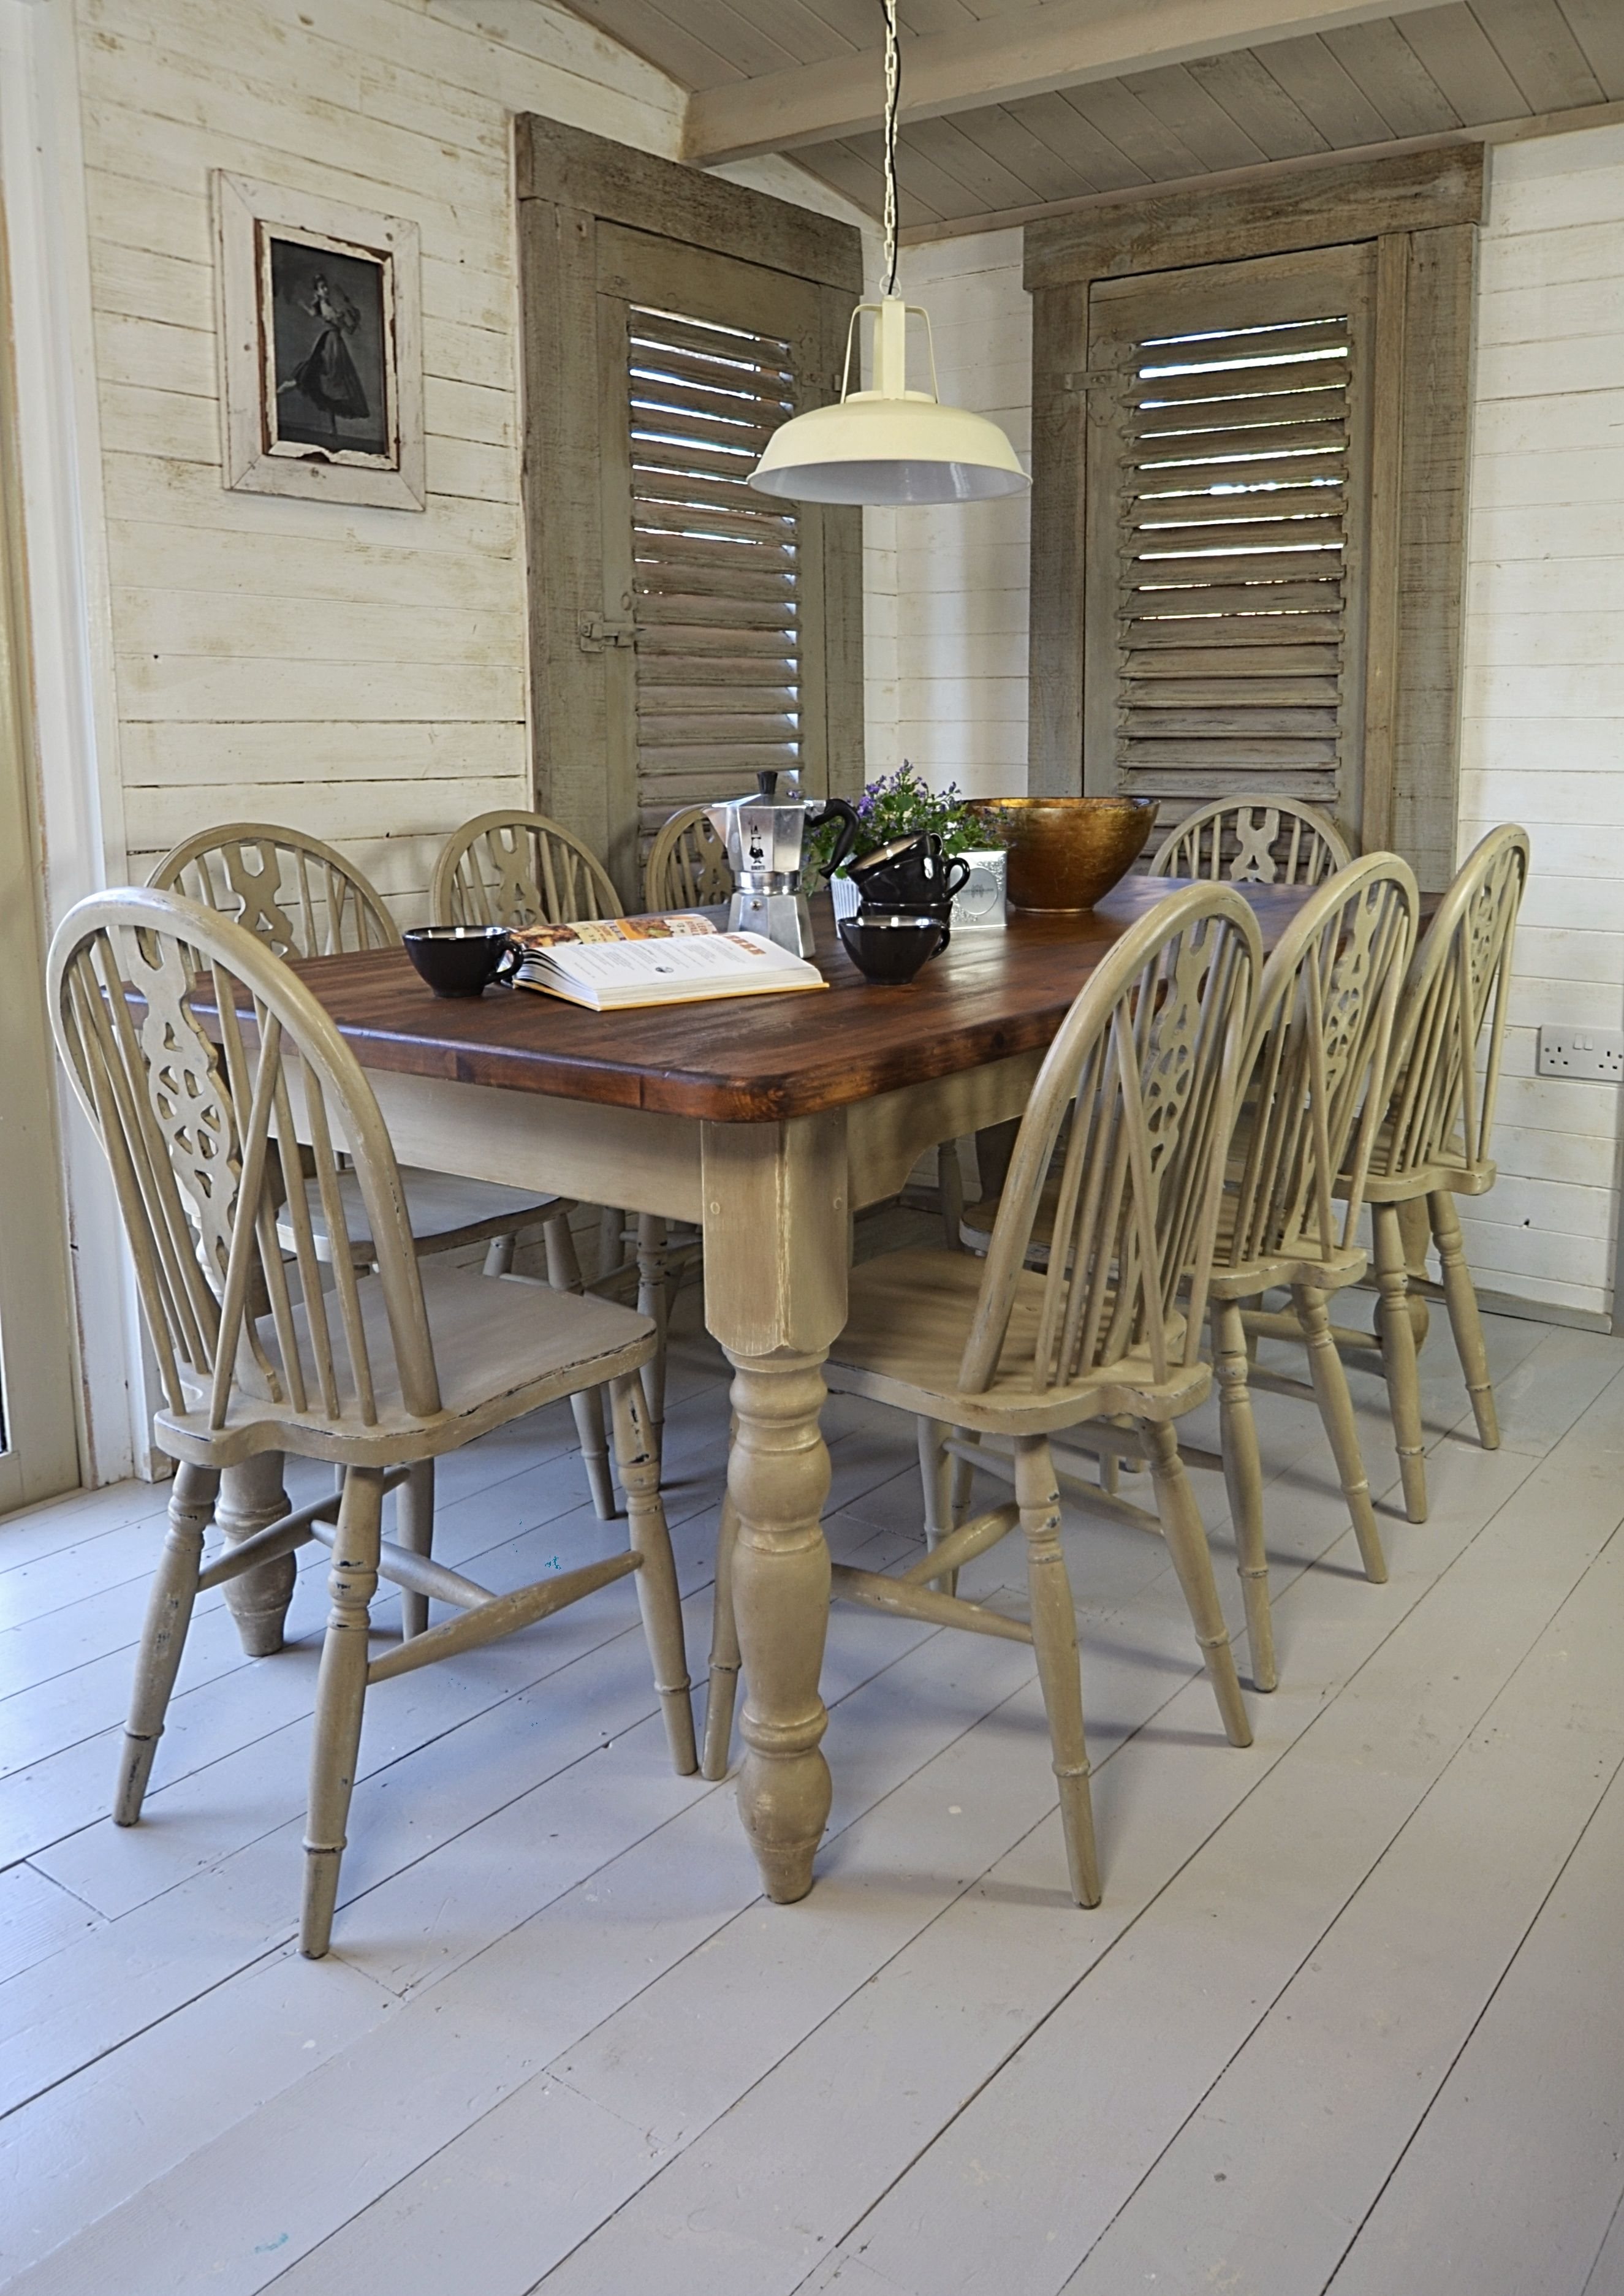 We've painted this large dining set in Annie Sloan Country